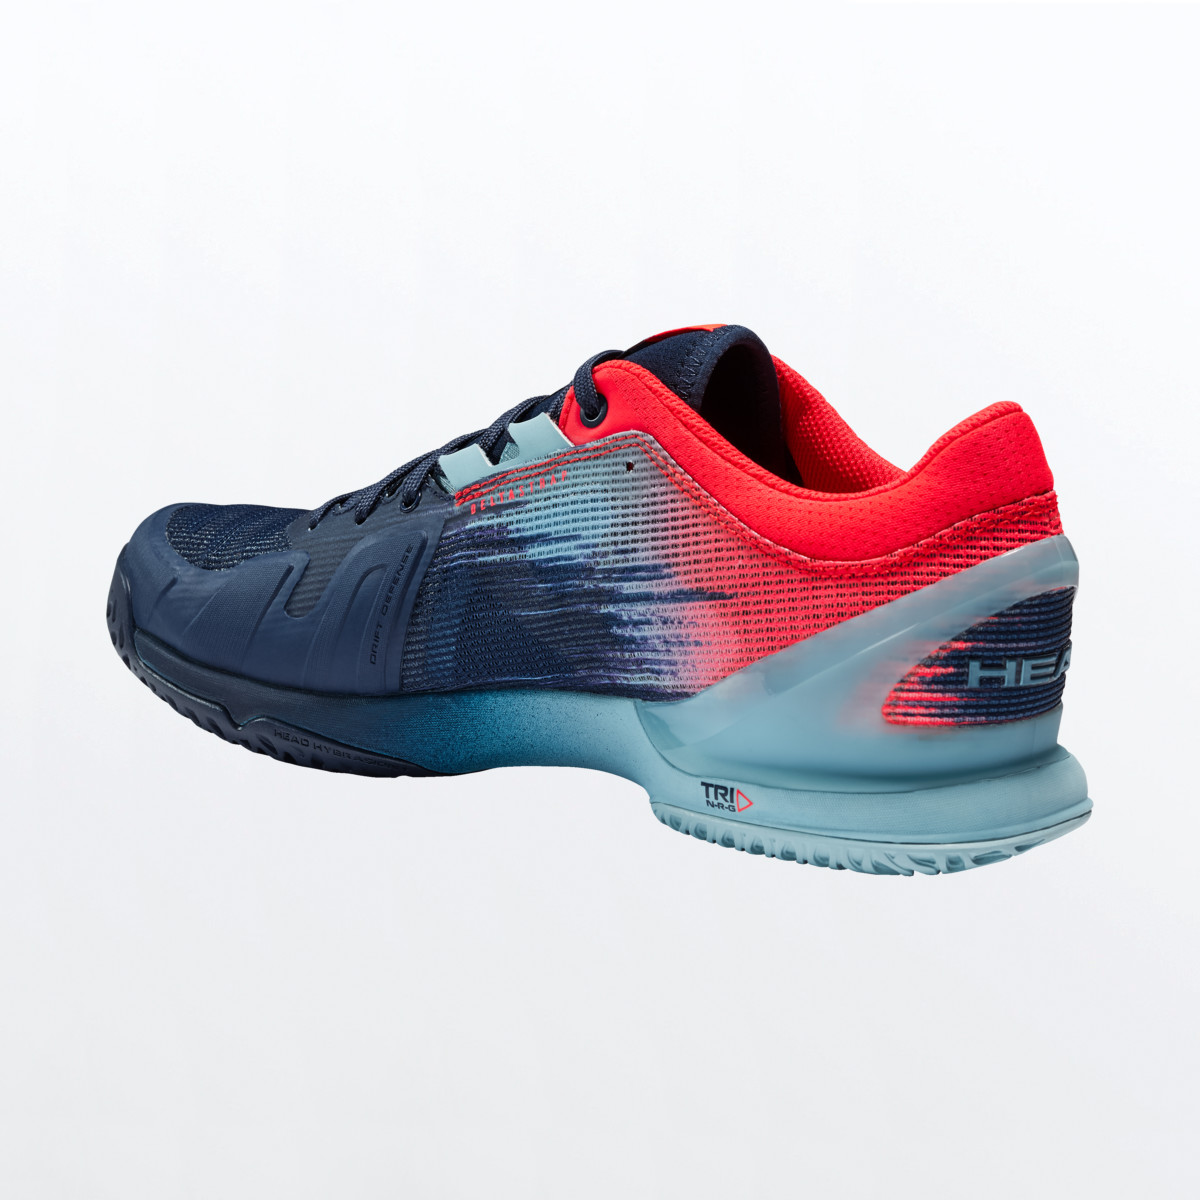 Head Sprint Pro 3.0 Mens Tennis Shoes – Dress Blue/Neon Red